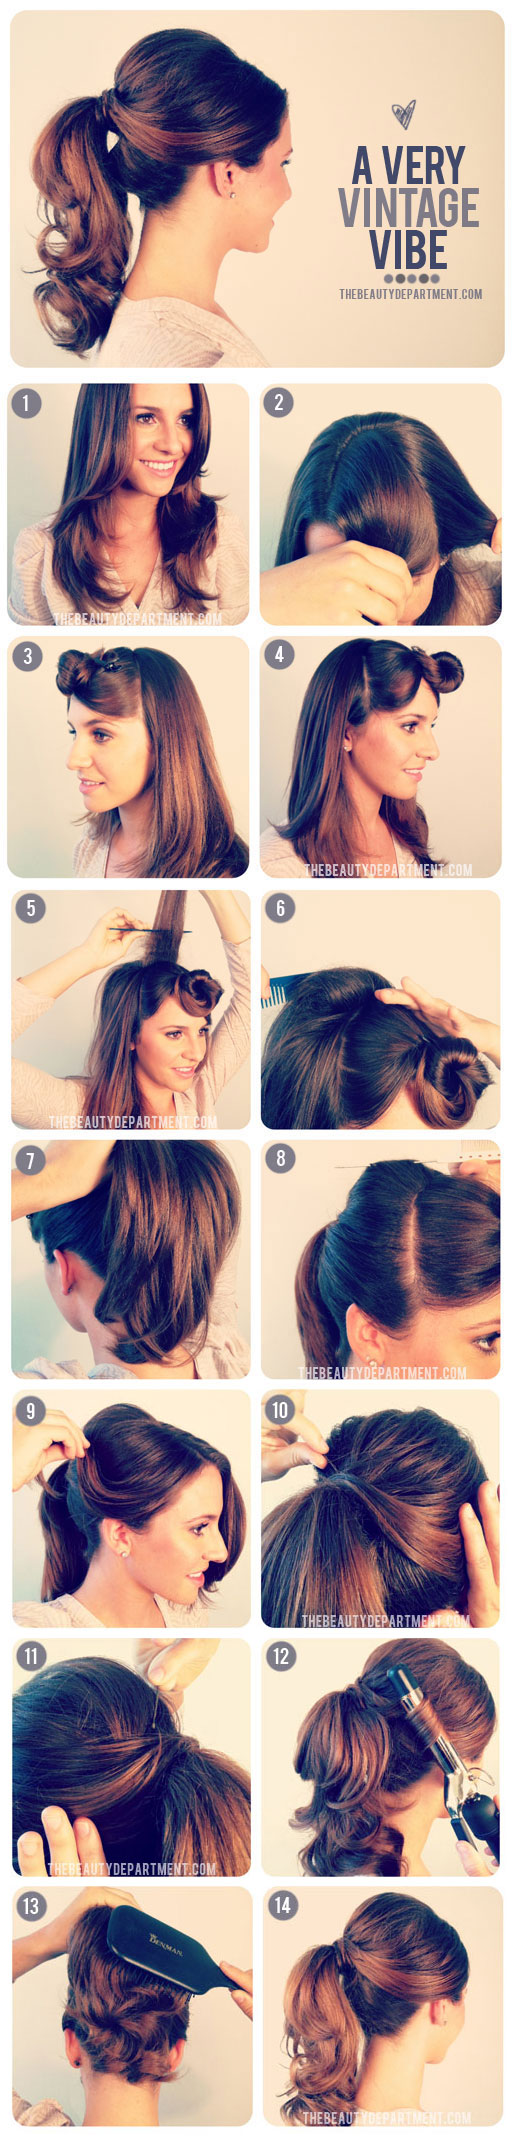 """DIY :: """"A Very Vintage Vibe"""" 1950's Inspired Ponytail 